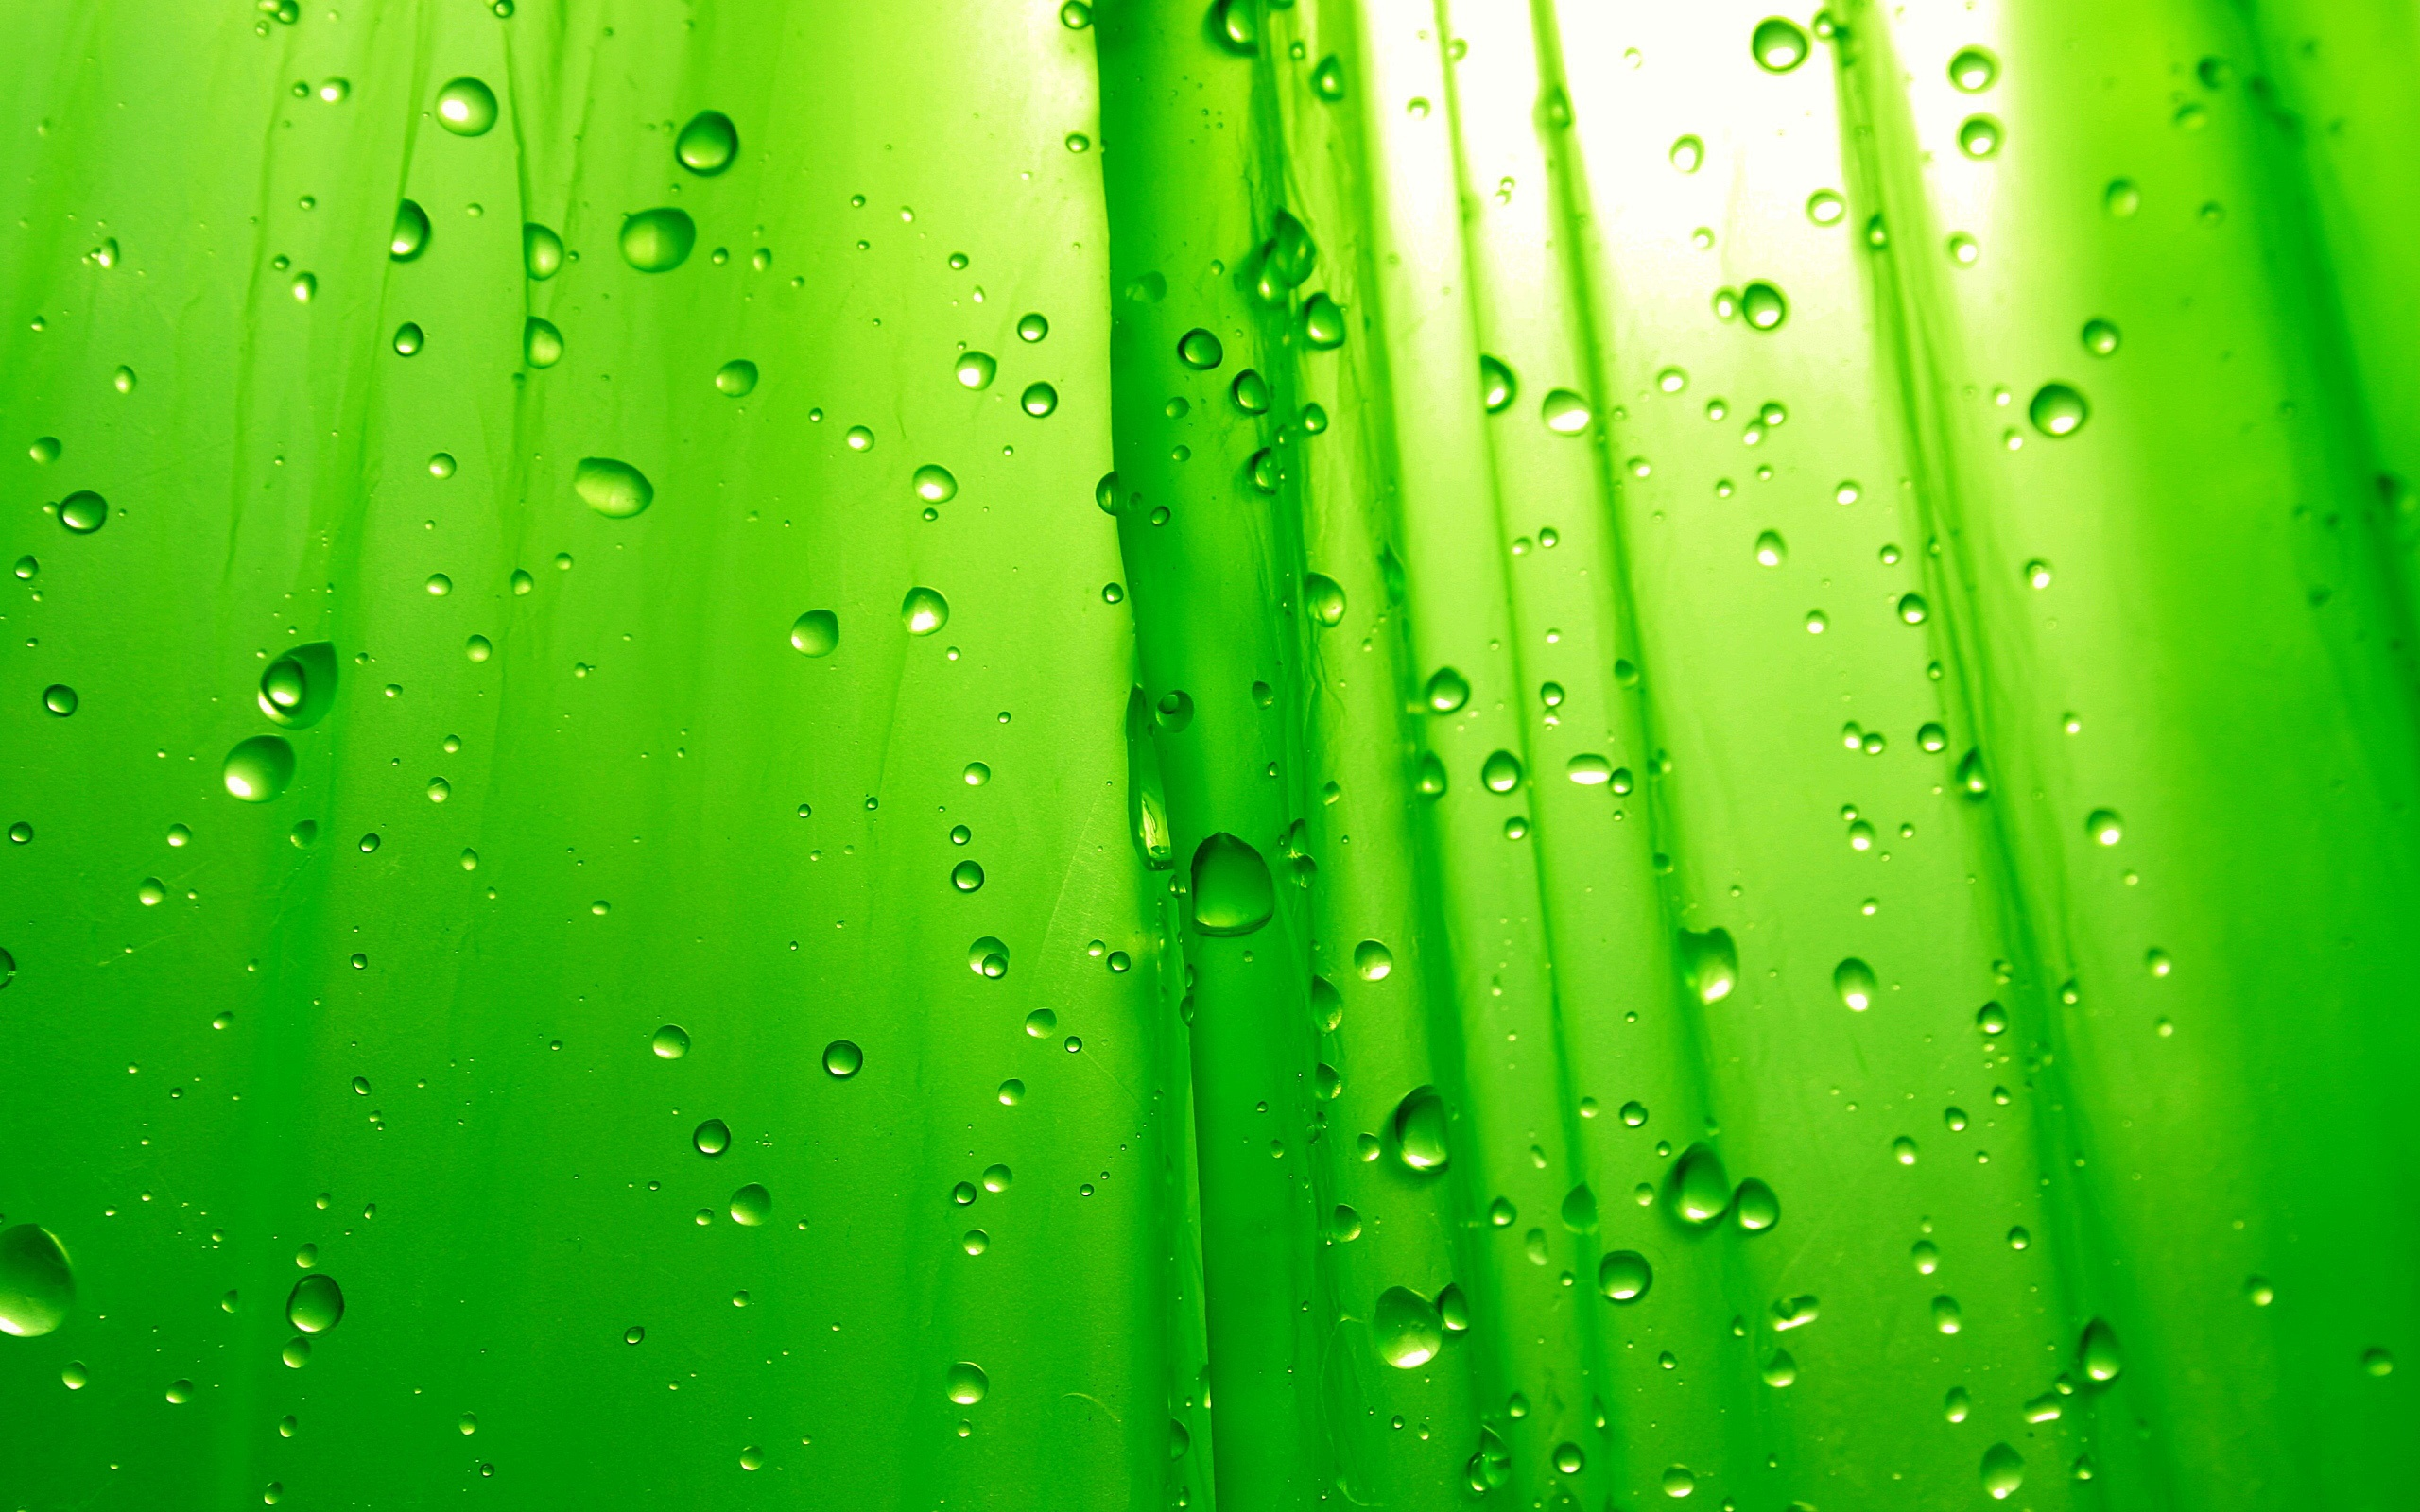 Green wallpaper colors wallpaper 34511131 fanpop - Wallpaper photos ...